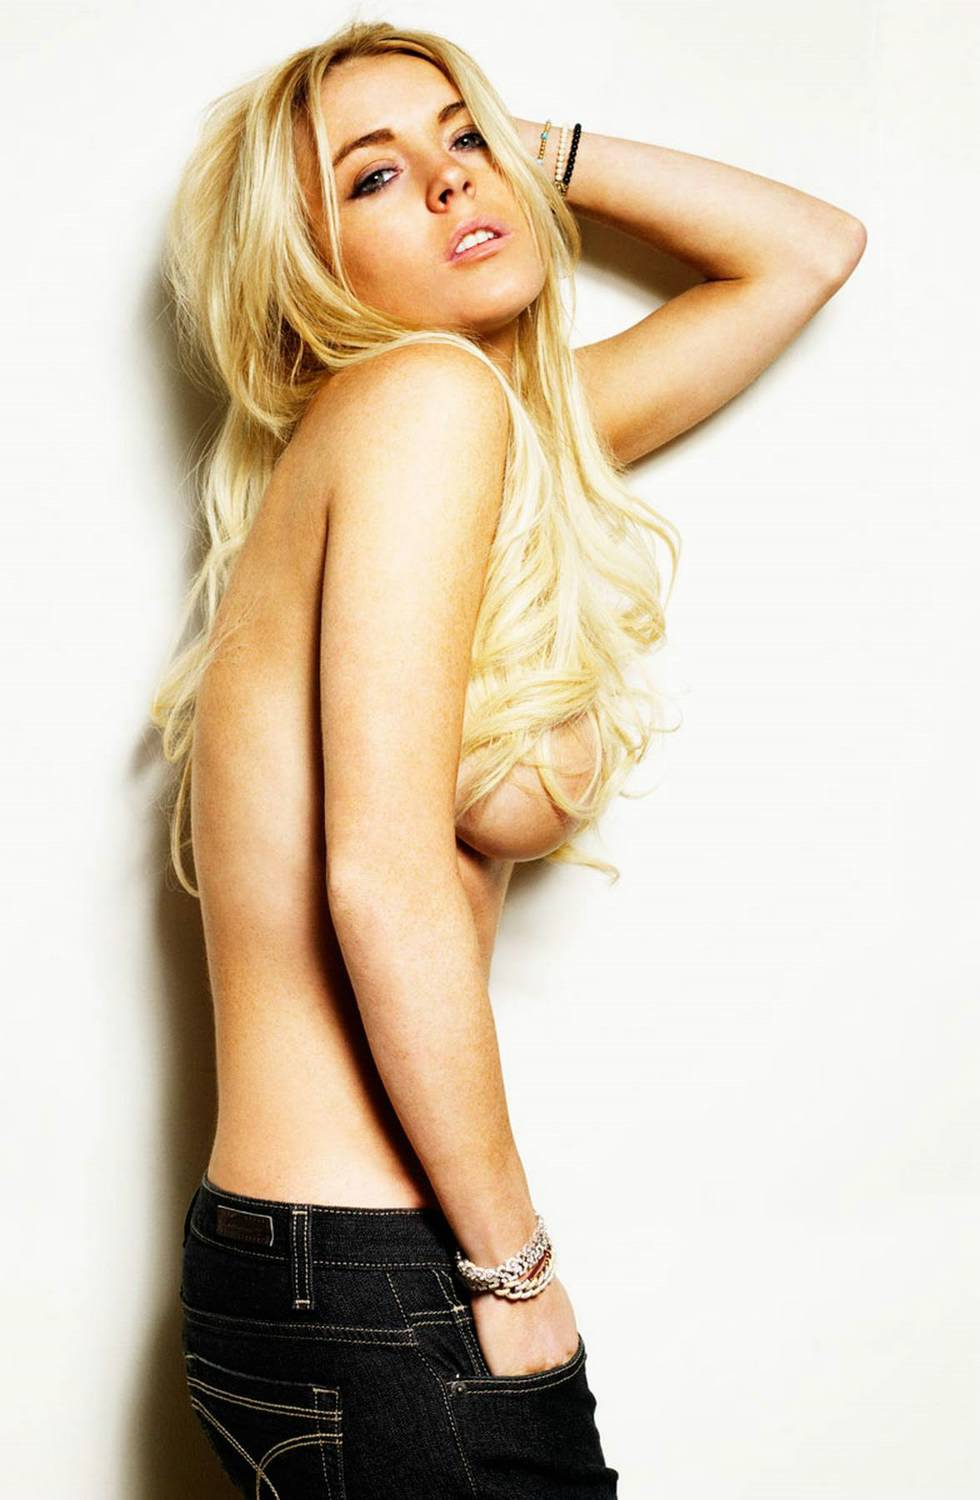 comic fuck little girl free like really